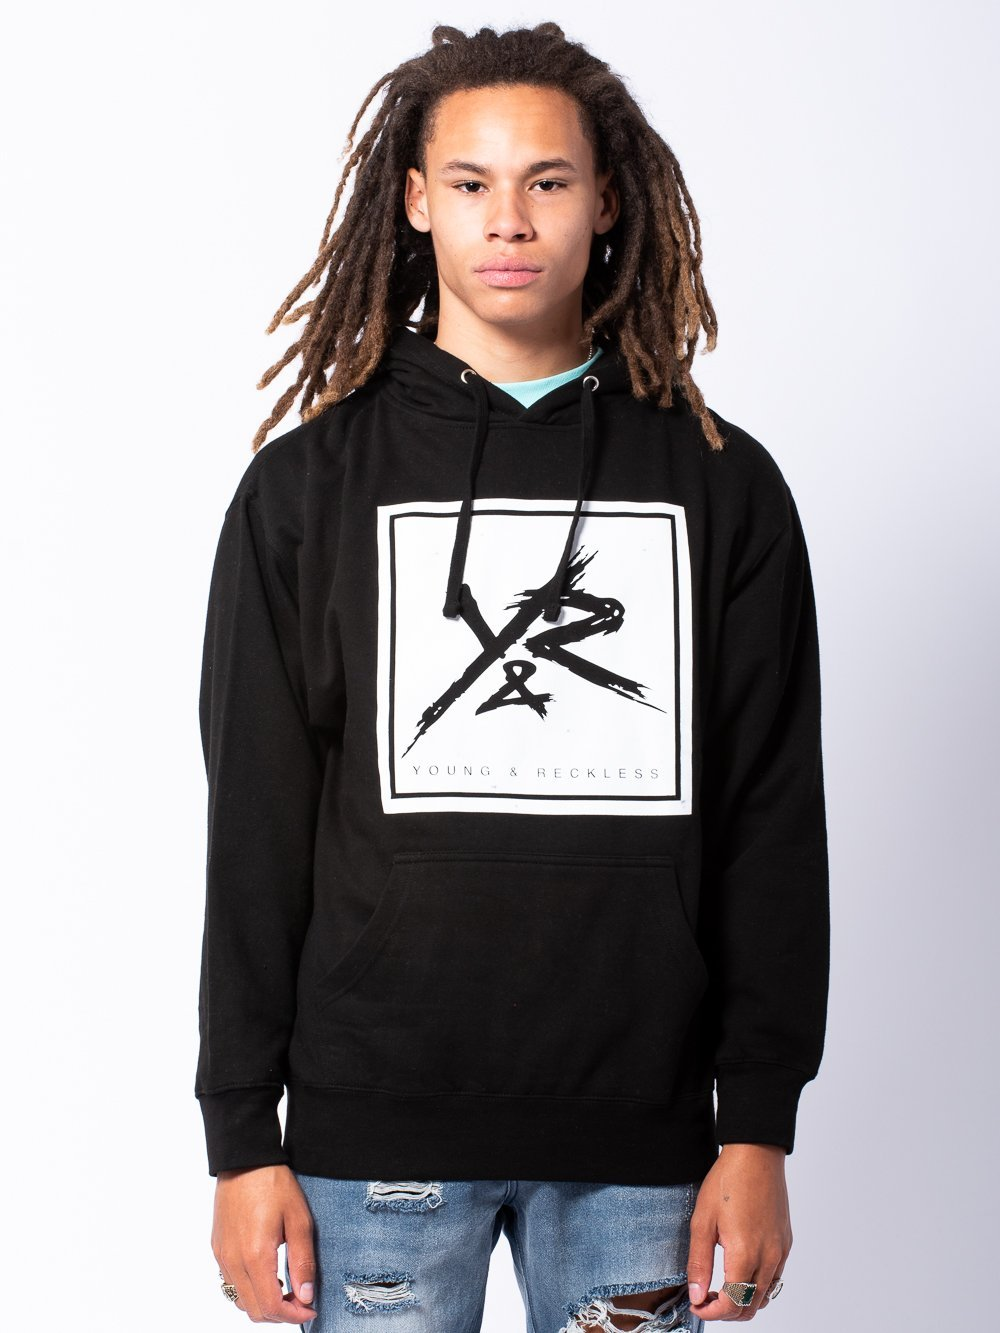 Young and Reckless Mens - Tops - Hoodies Square Hoodie - Black/White